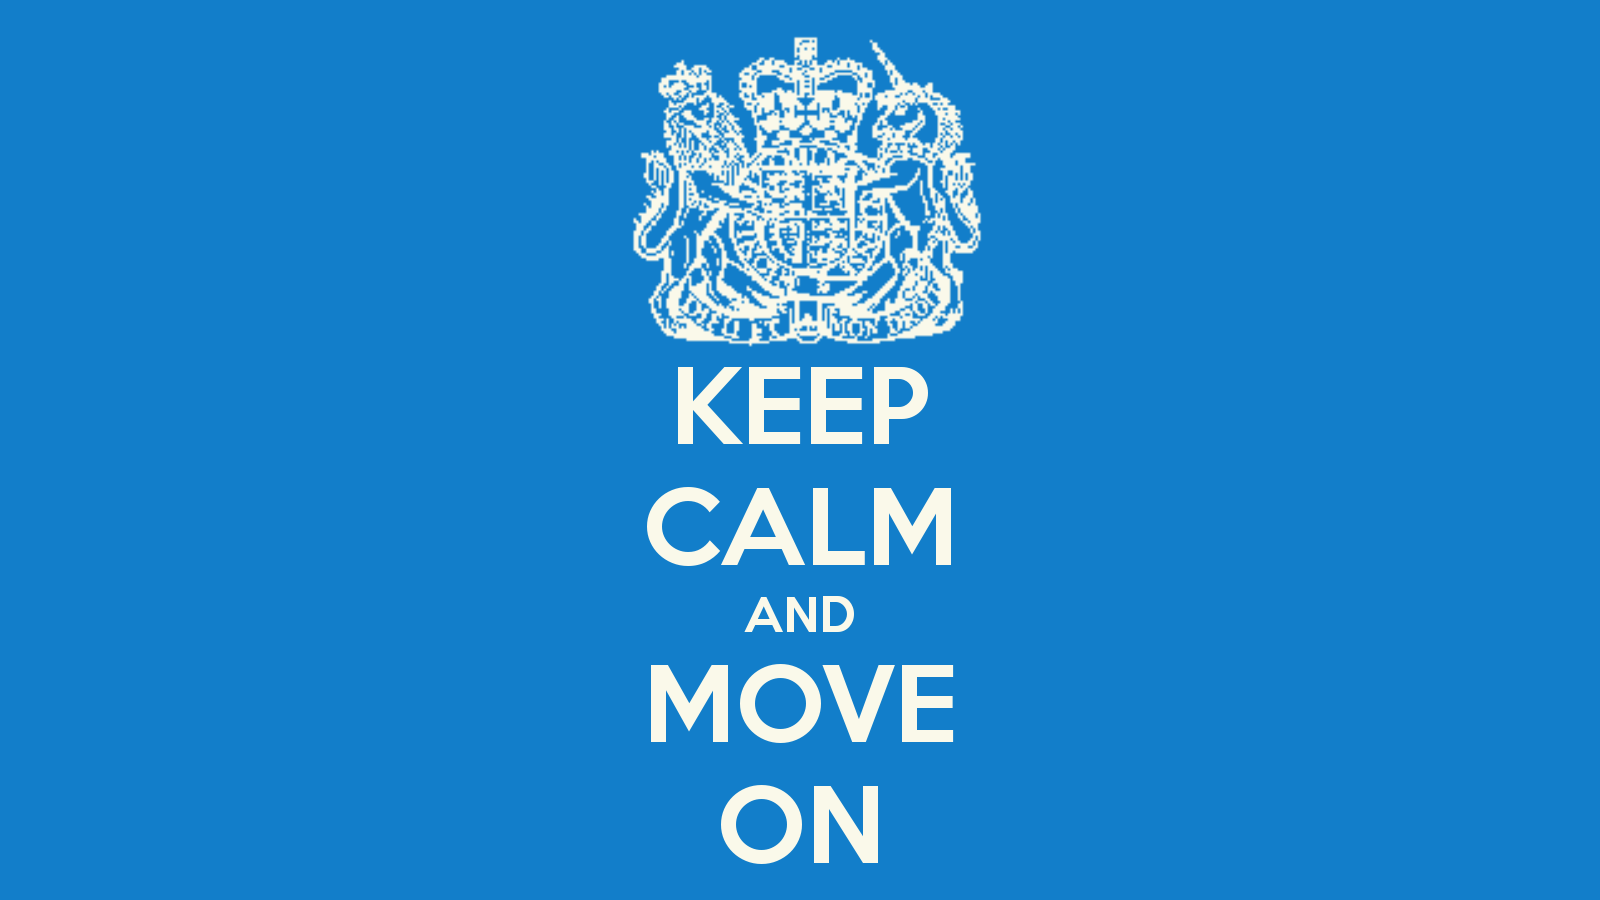 Keep Calm Quotes Keep Calm And Move On Pictures Photos And Images For Facebook